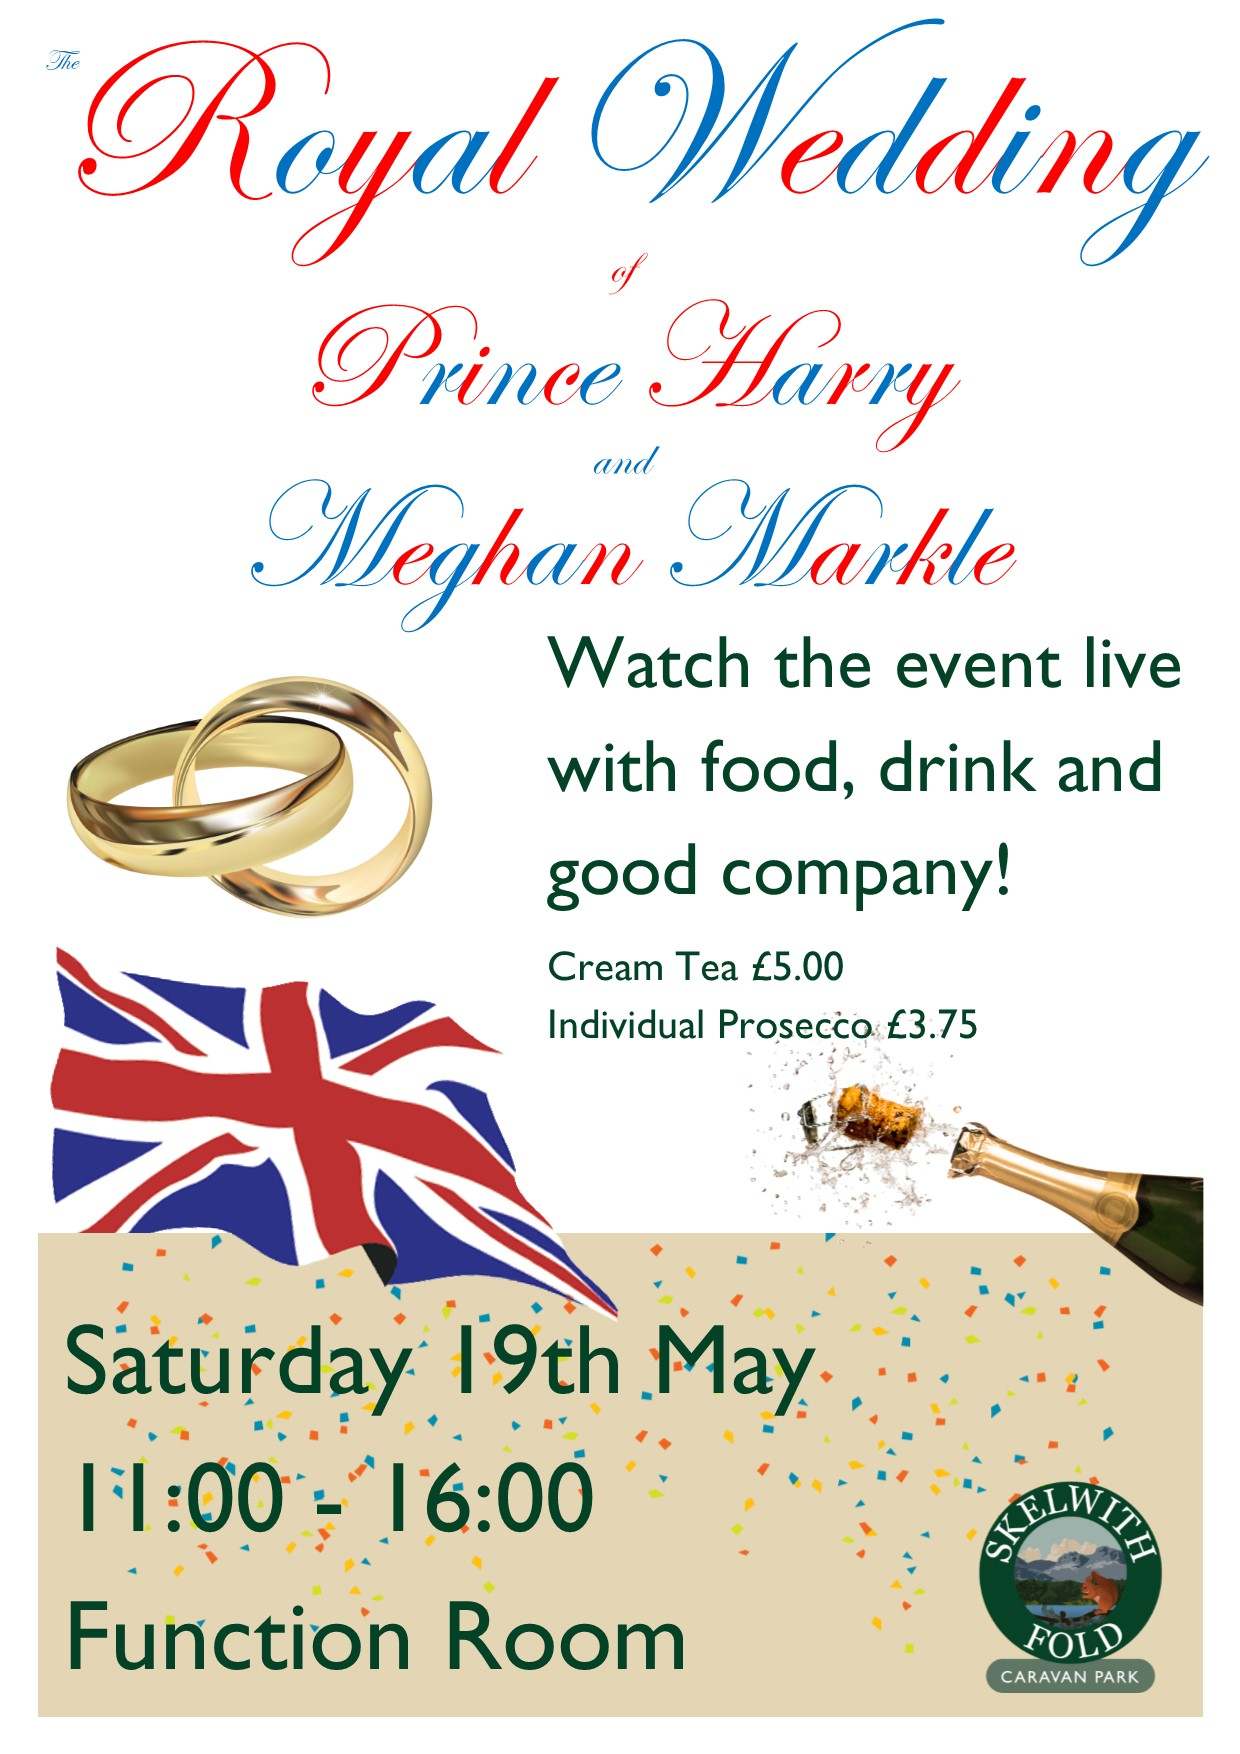 Watch the Royal Wedding at Skelwith Fold Caravan Park